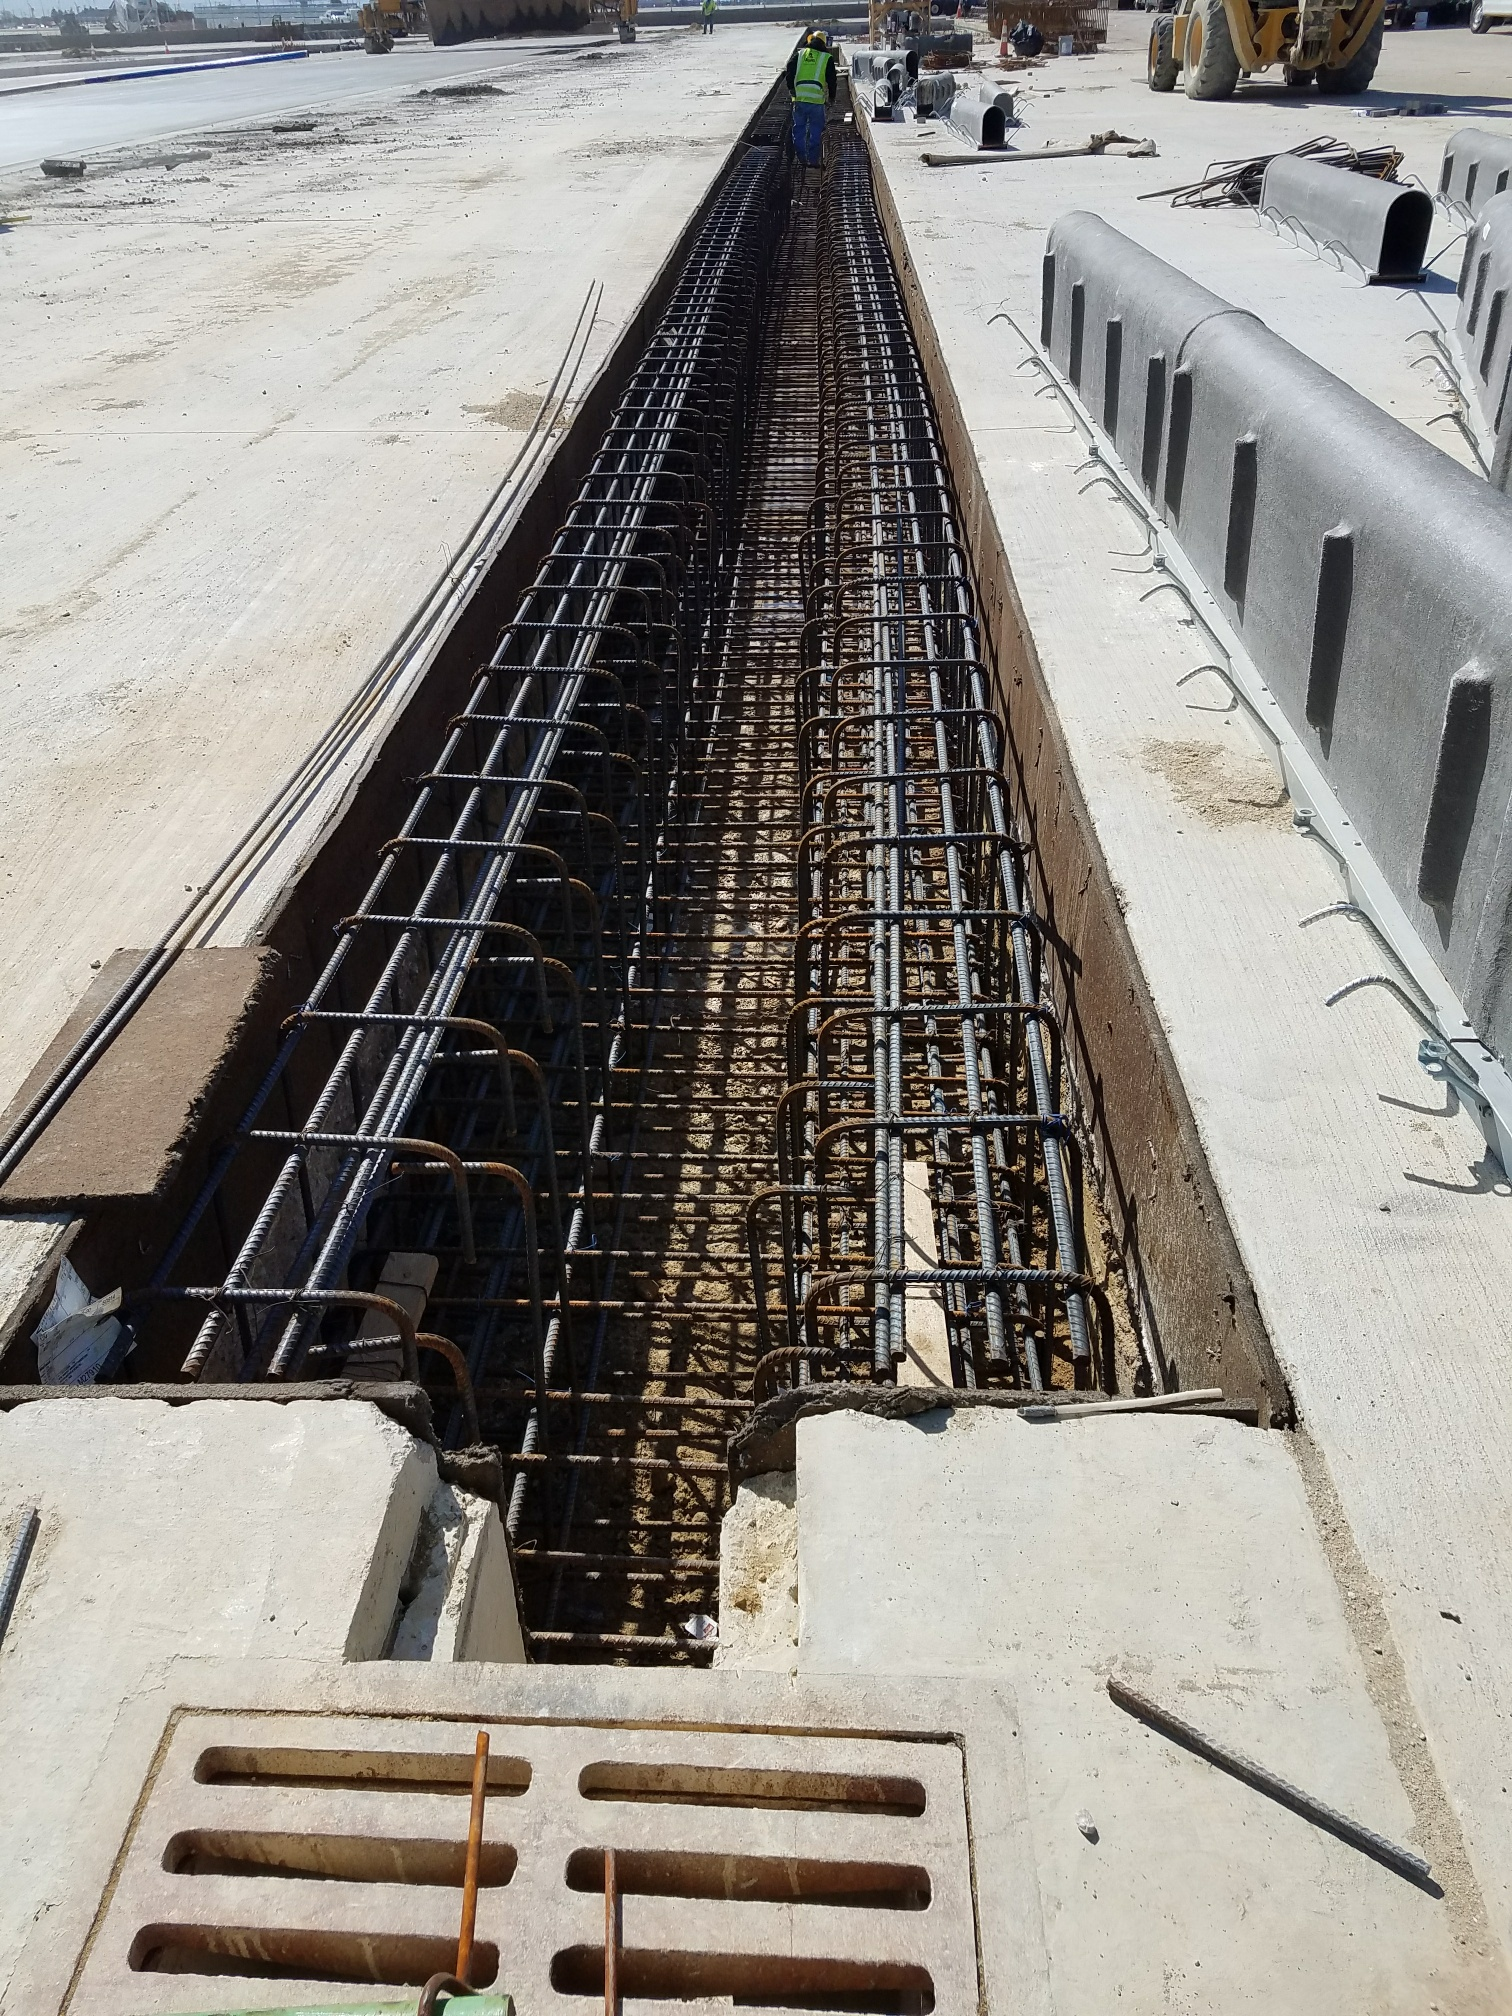 16 foot long trench drain sections